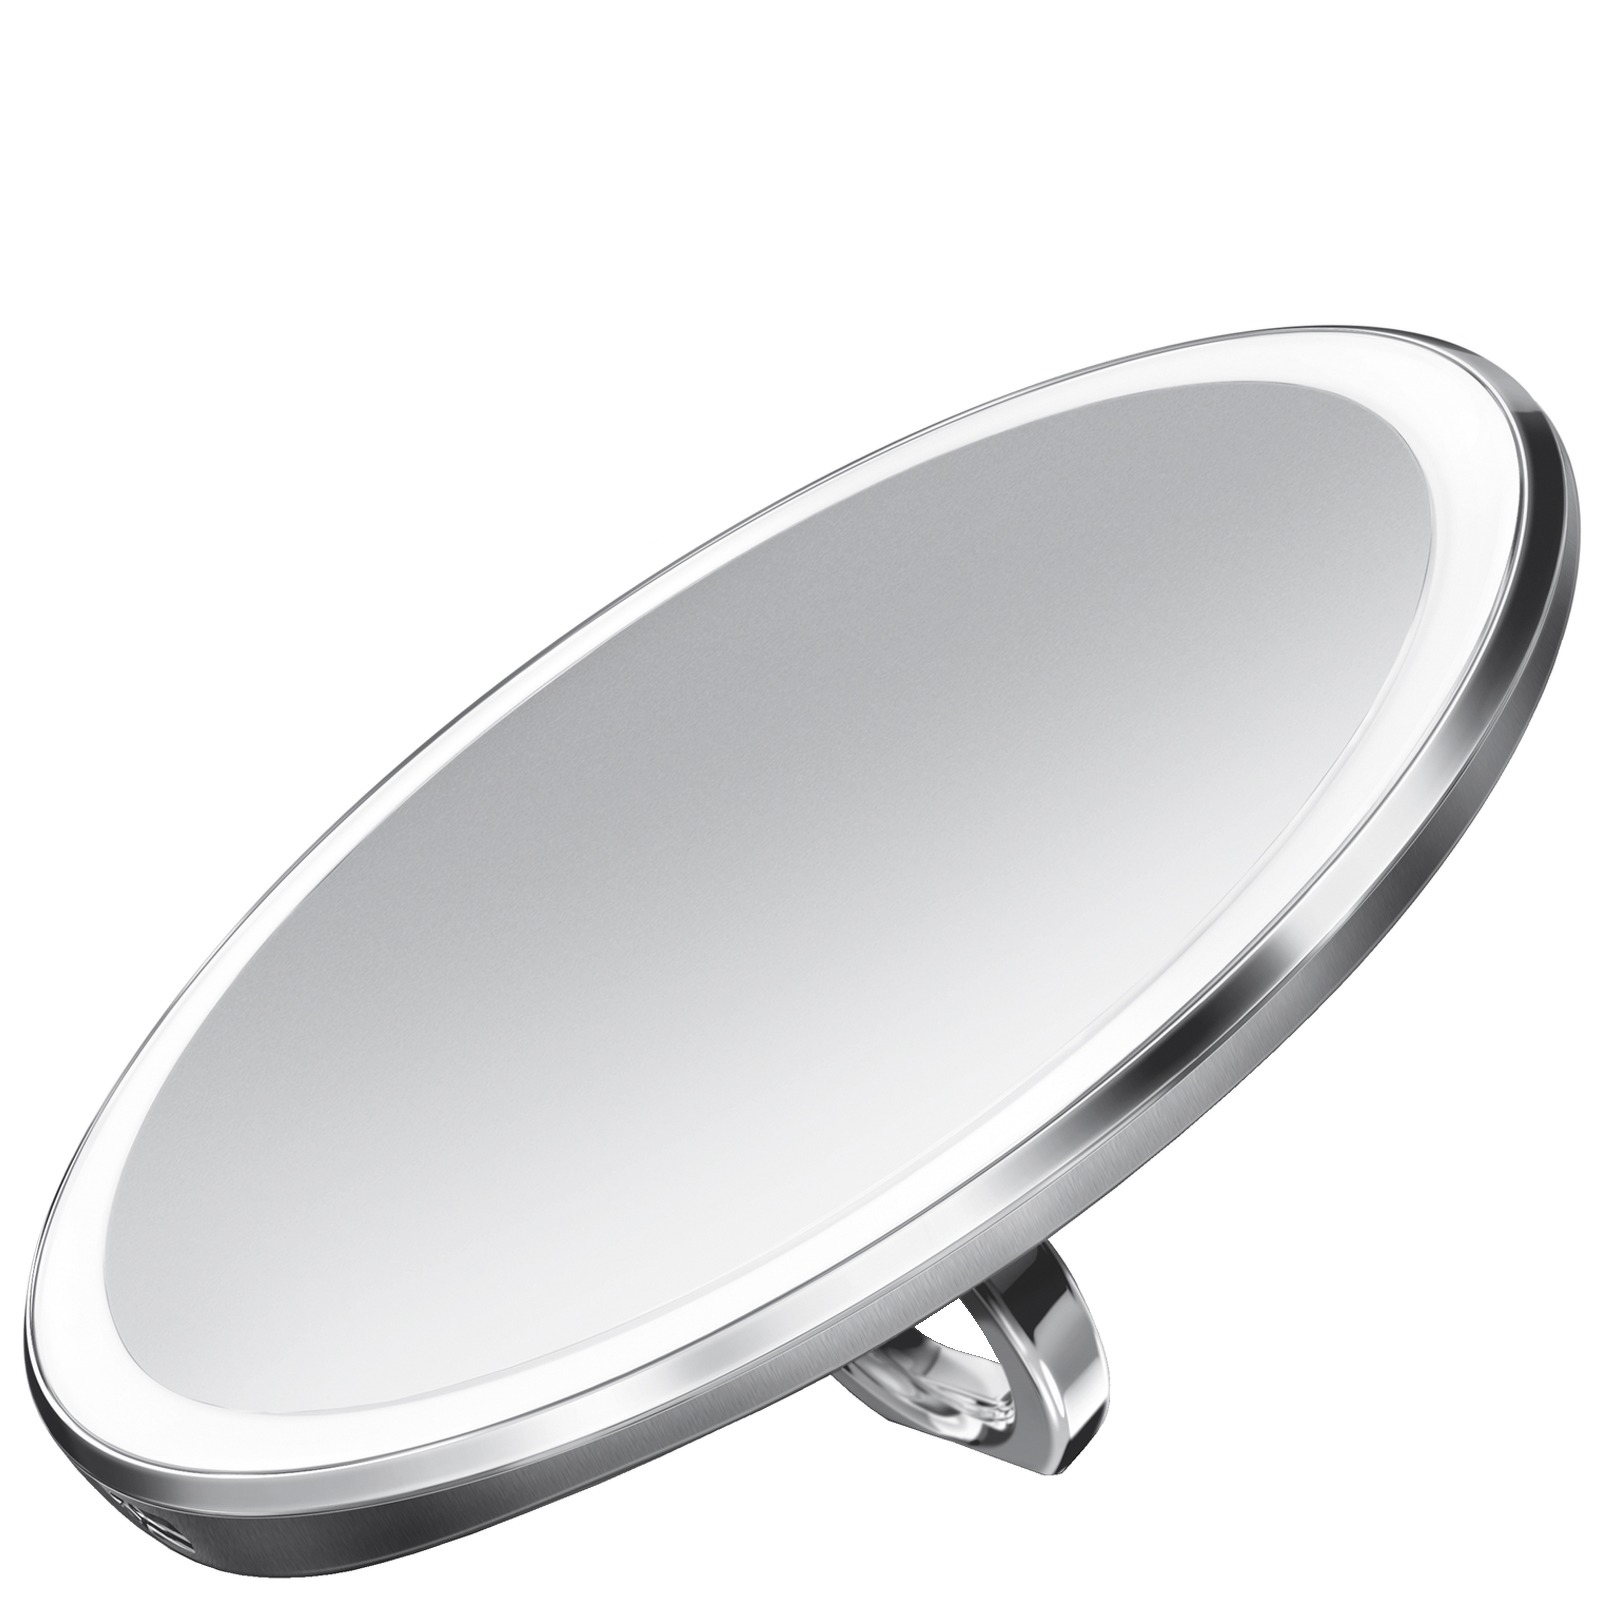 simplehuman Sensor Mirrors 3 x Magnification 10cm Sensor Mirror Compact: Round, Brushed Stainless Steel, Rechargeable with Pouch